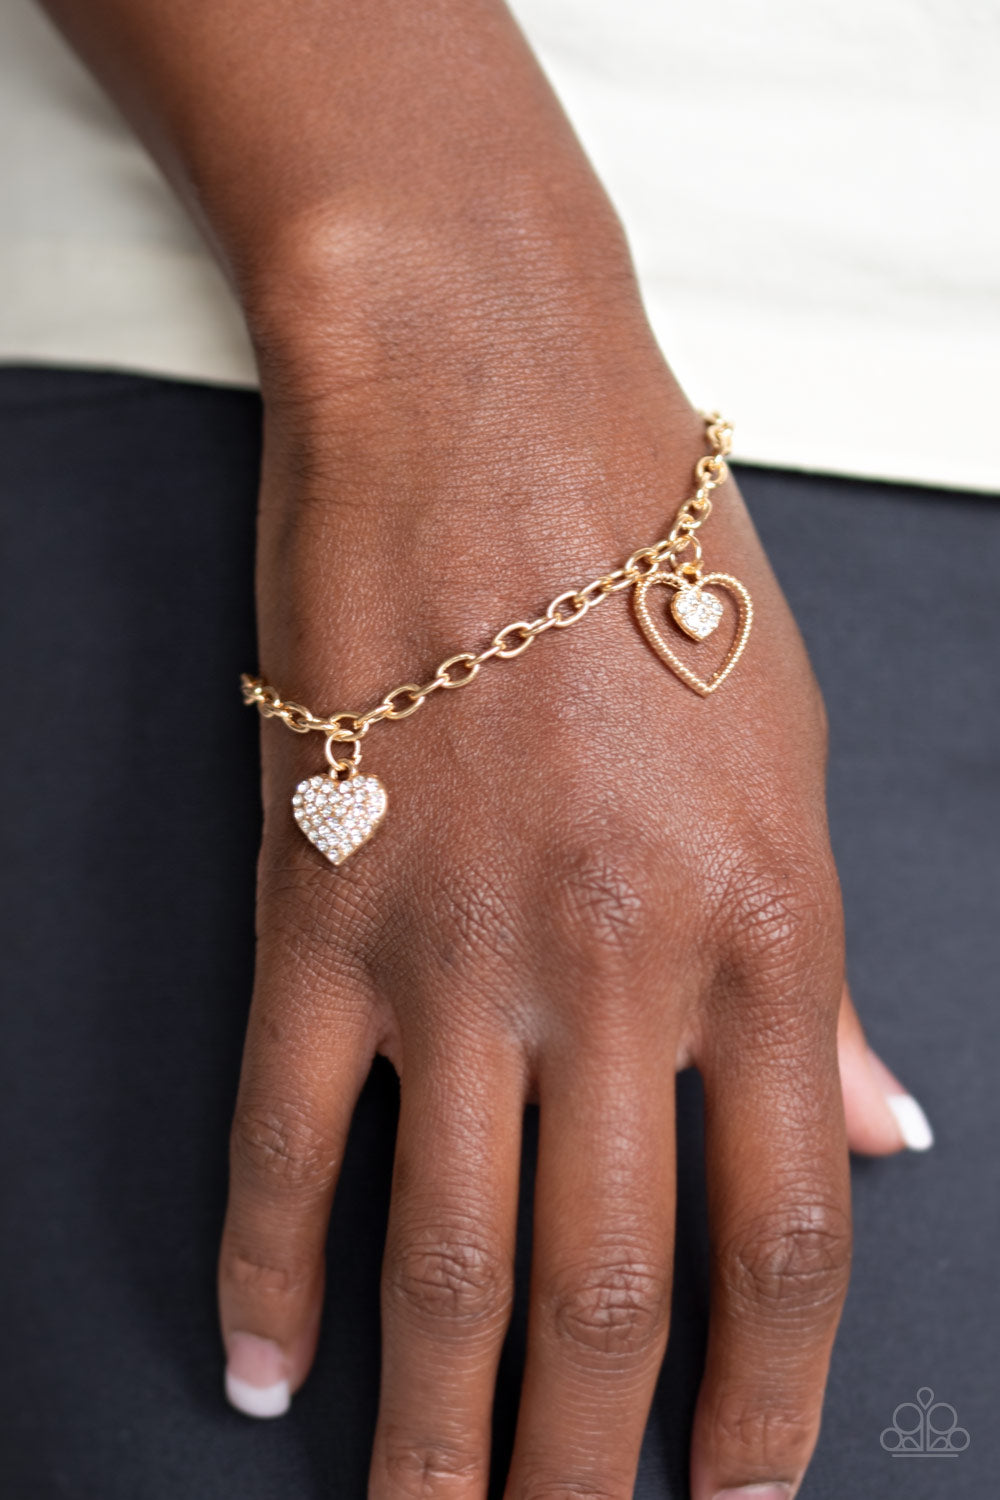 Paparazzi Accessories - Hearts and Harps - Gold Bracelet